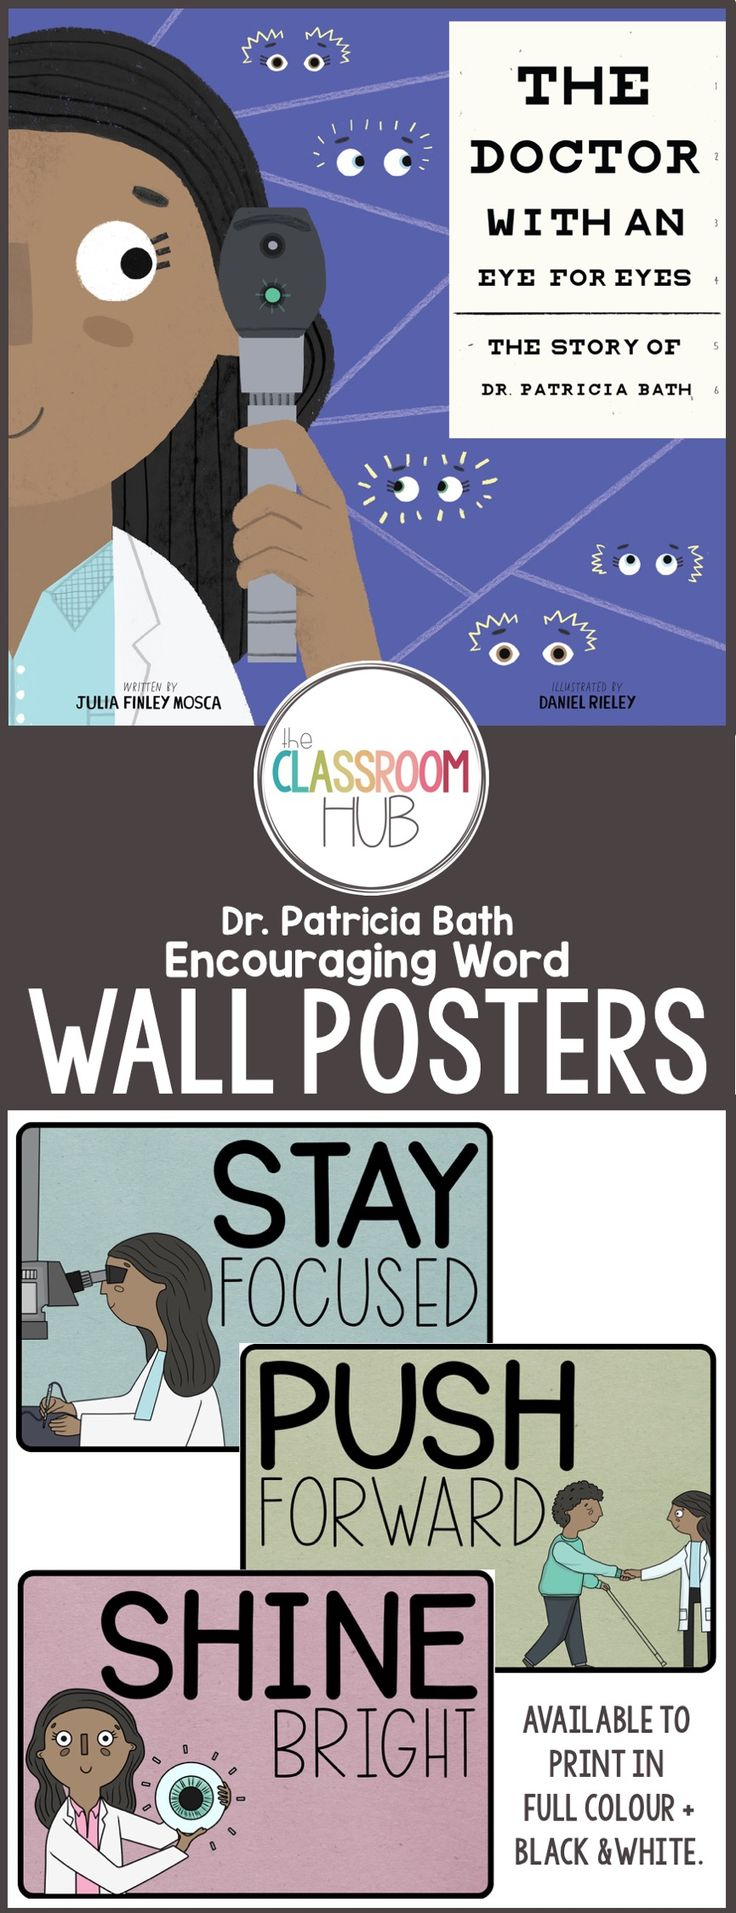 These posters are inspired by the book 'The Doctor with an Eye for Eyes' written by Julia Finley Mosca. The book is based on the life and career of Dr. Patricia Bath – an amazing ophthalmologist and inventor, who grew up with barriers that could have stopped her from succeeding, yet, she showed great tenacity and strength and fought to succeed against all odds.    These words are ideal to display in your classroom to encourage your students to strive for whatever they are passionate about.